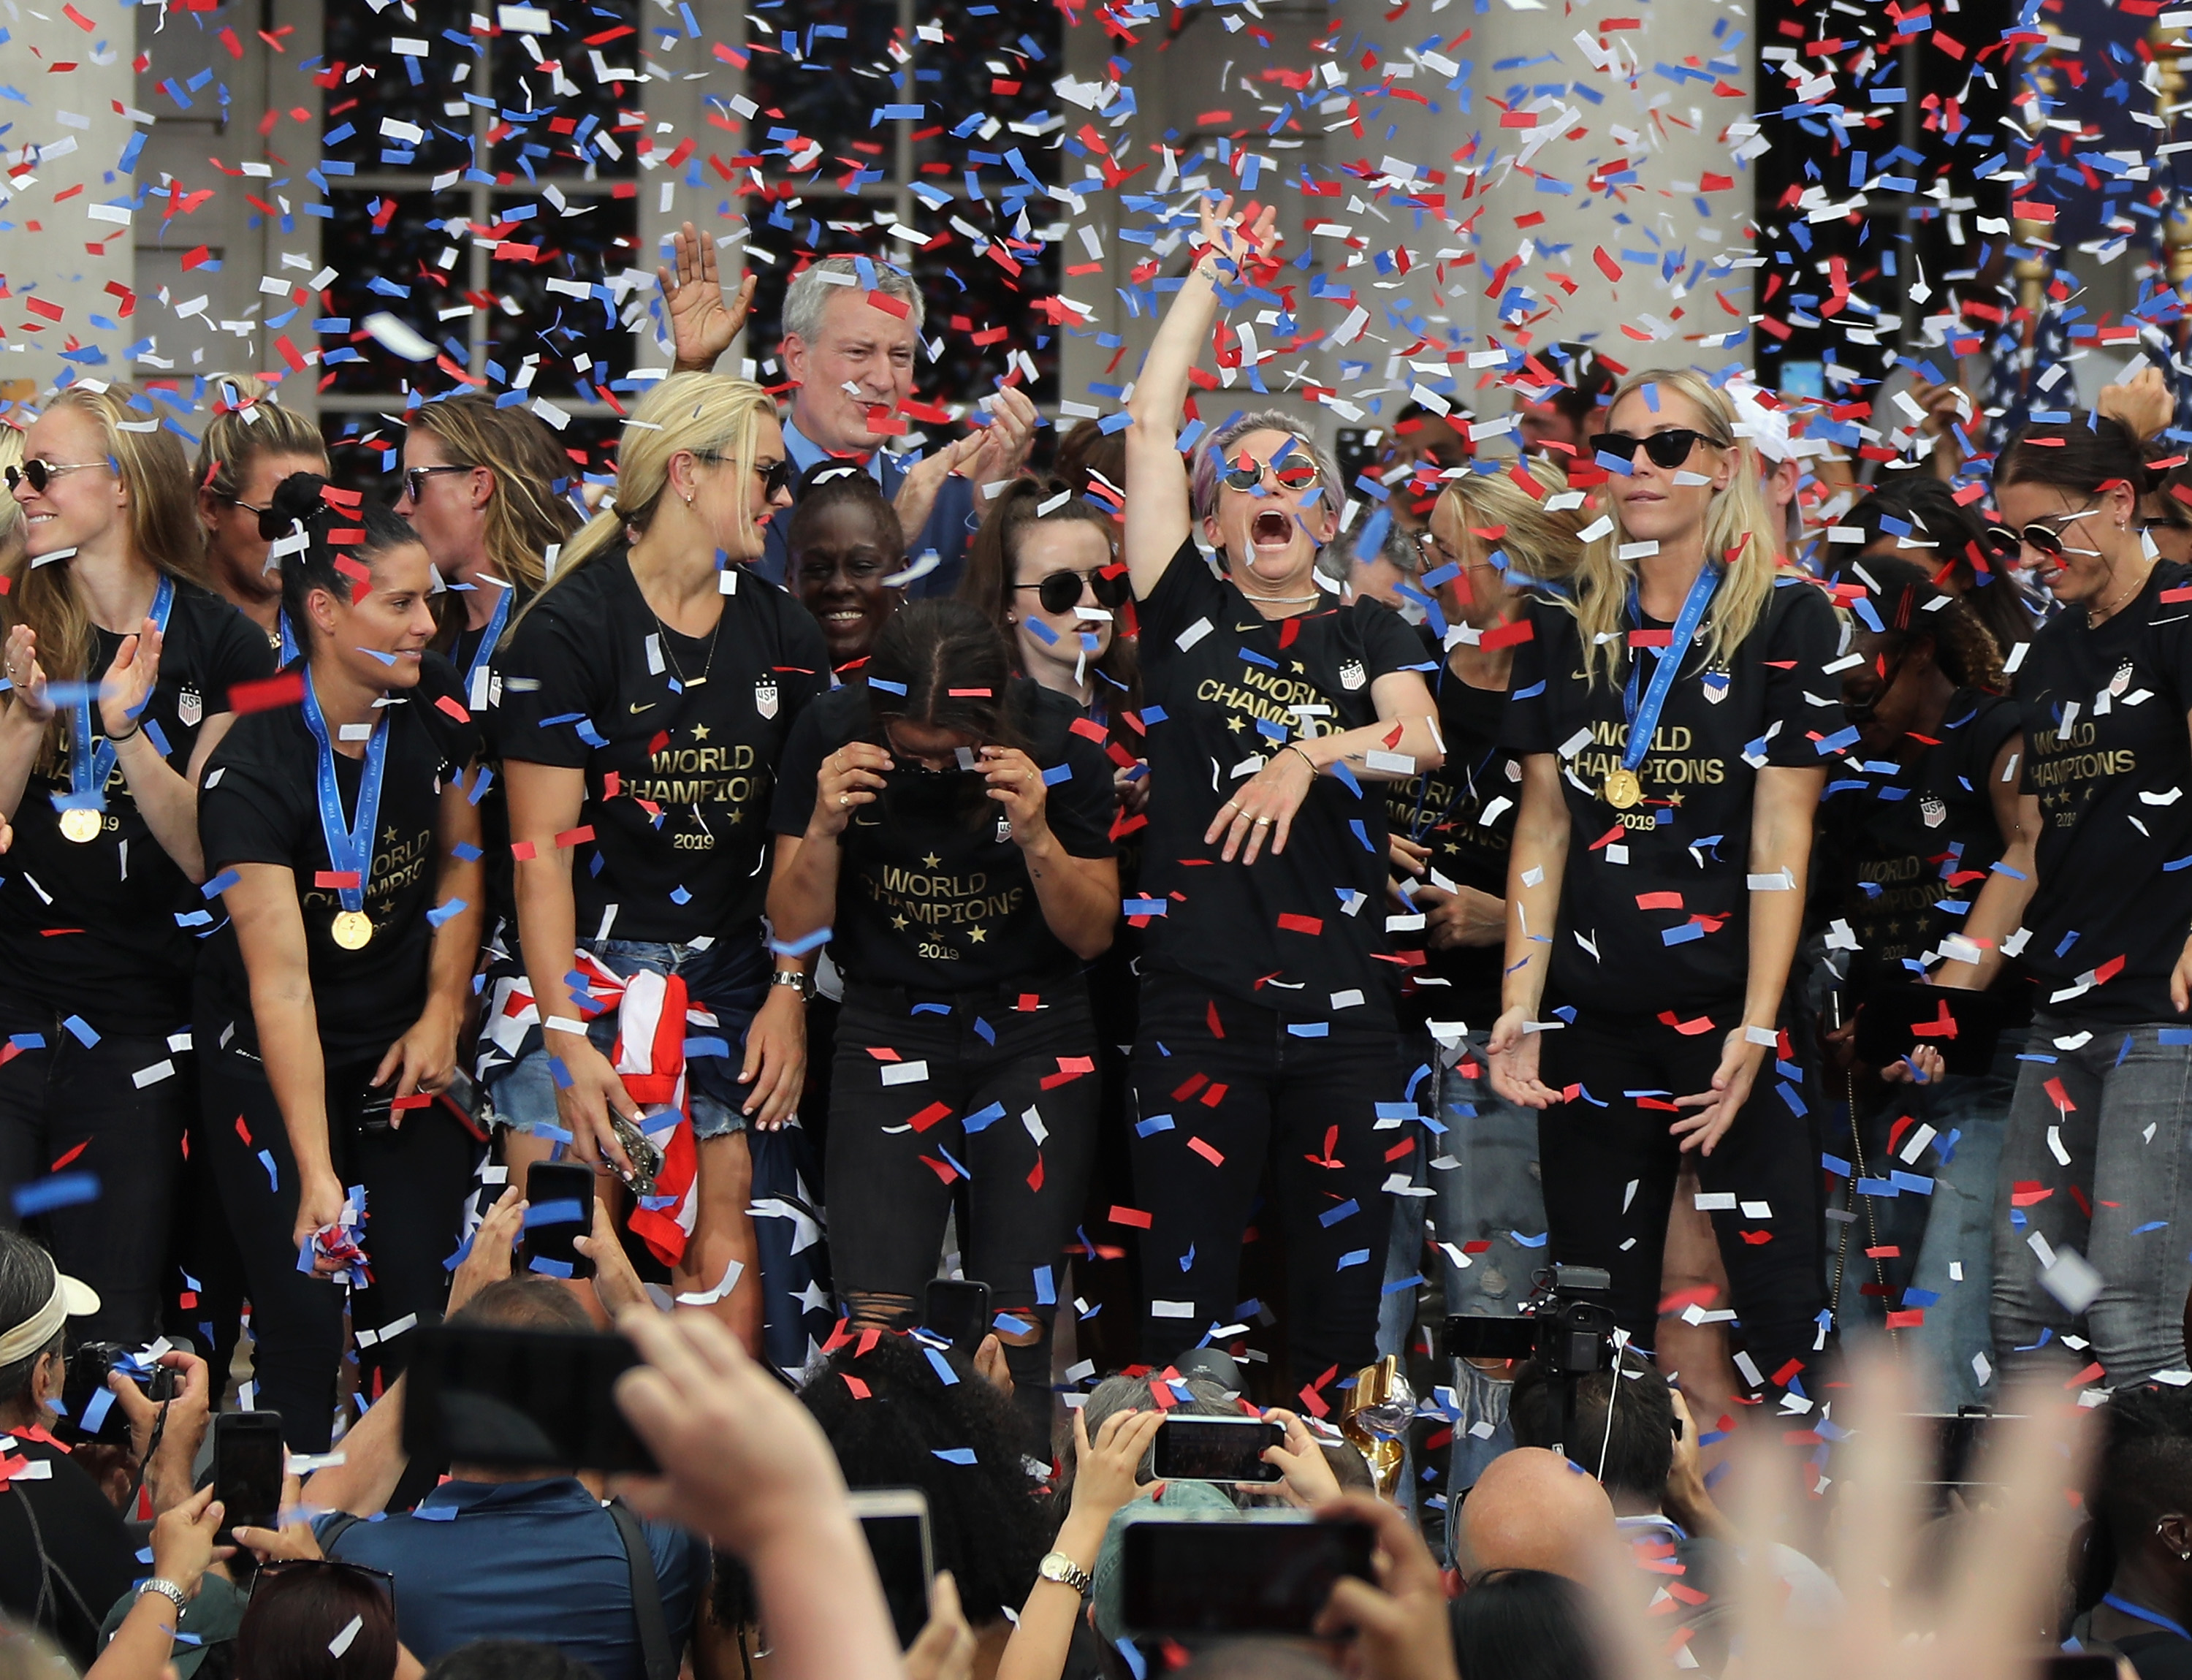 USA Women's Soccer Team Celebrate World Cup Victory